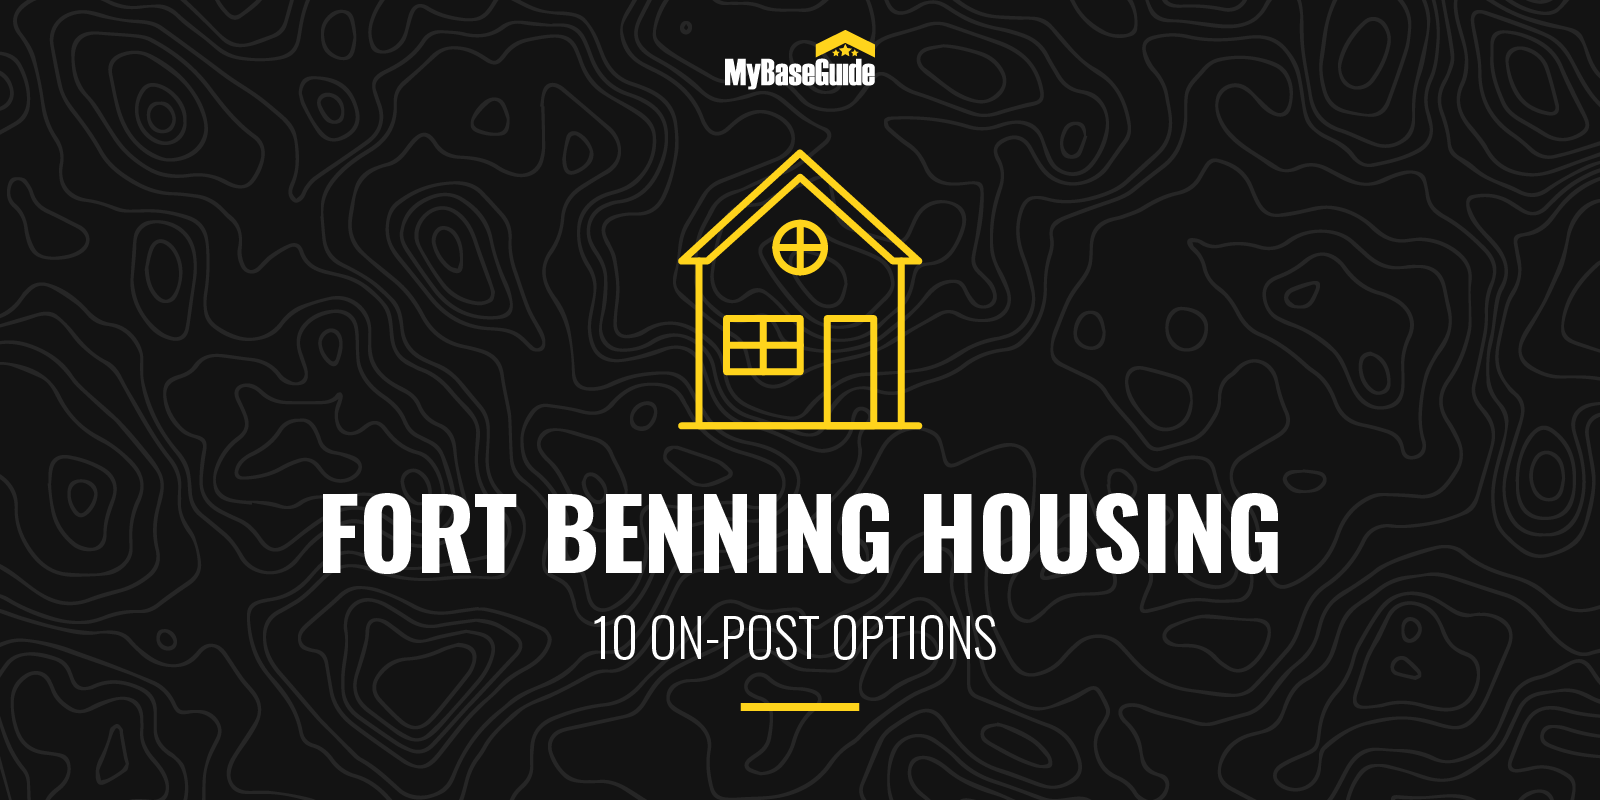 Fort Benning Housing: 10 On Post Options